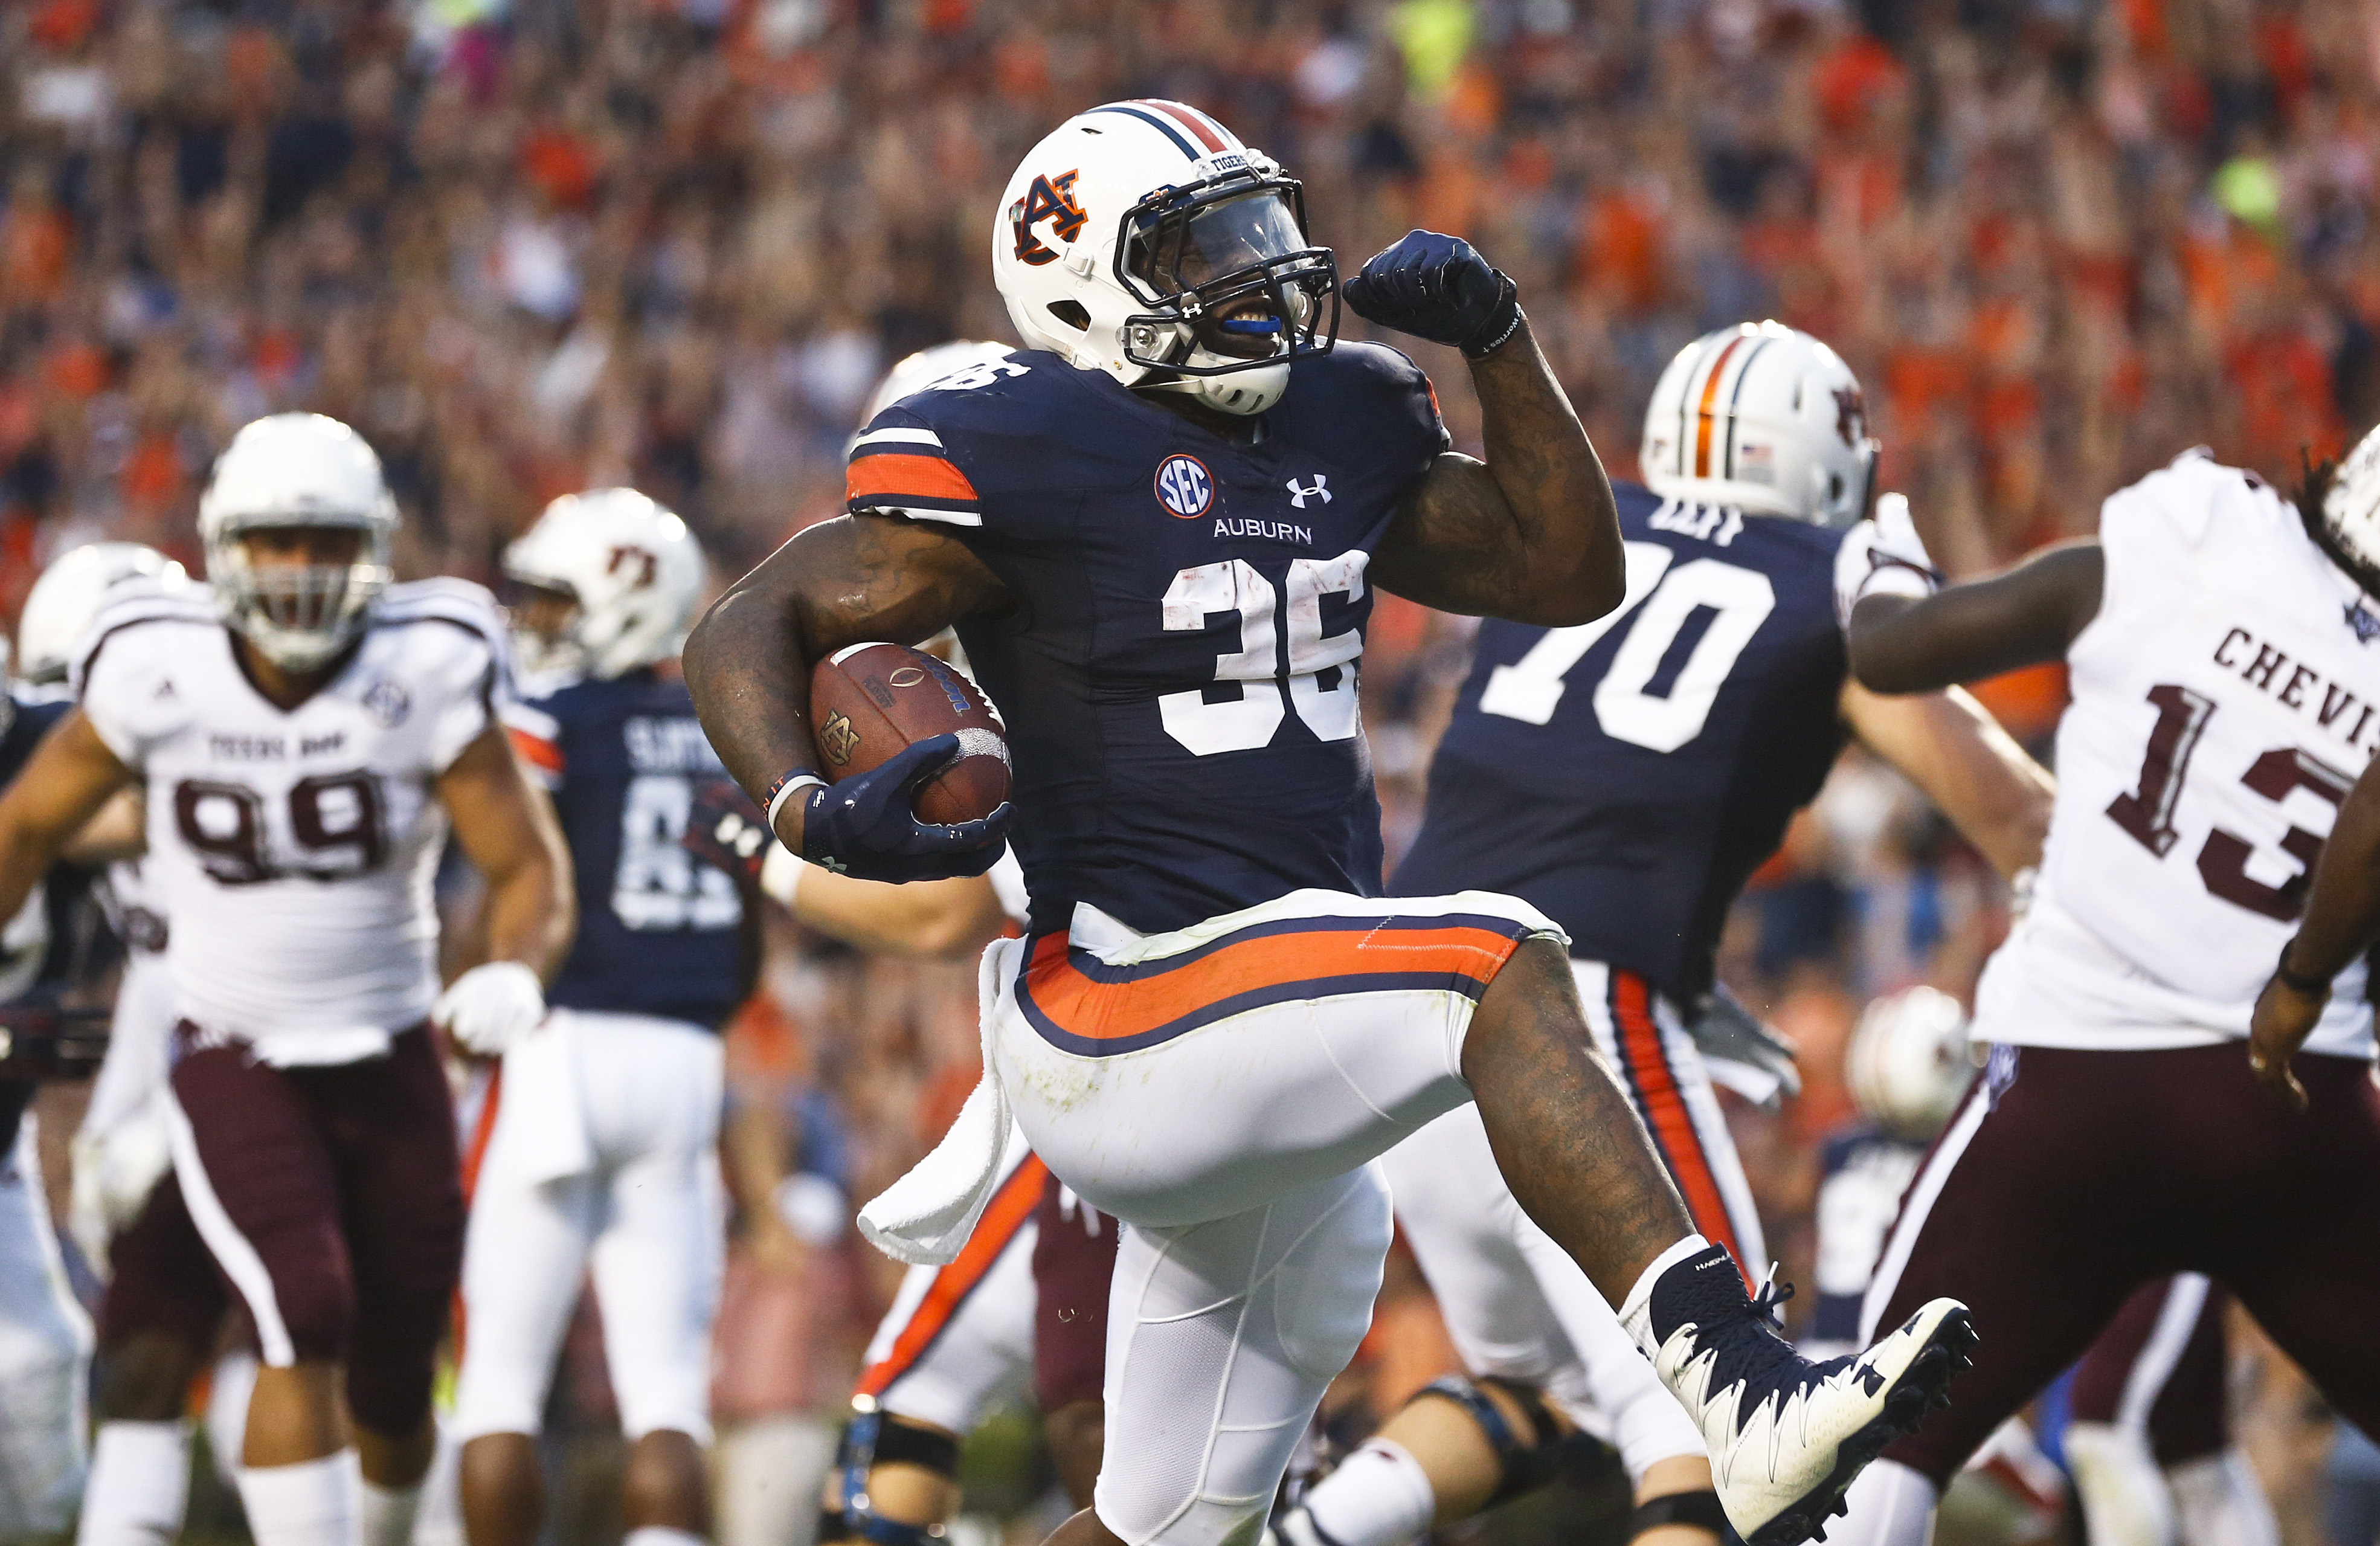 FILE - In this Sept. 17, 2016, file photo, Auburn running back Kamryn Pettway, center, scores a touchdown in the first half during an NCAA college football game against Texas A&M, in Auburn, Ala. Pettway came into the regular season as a converted fullbac